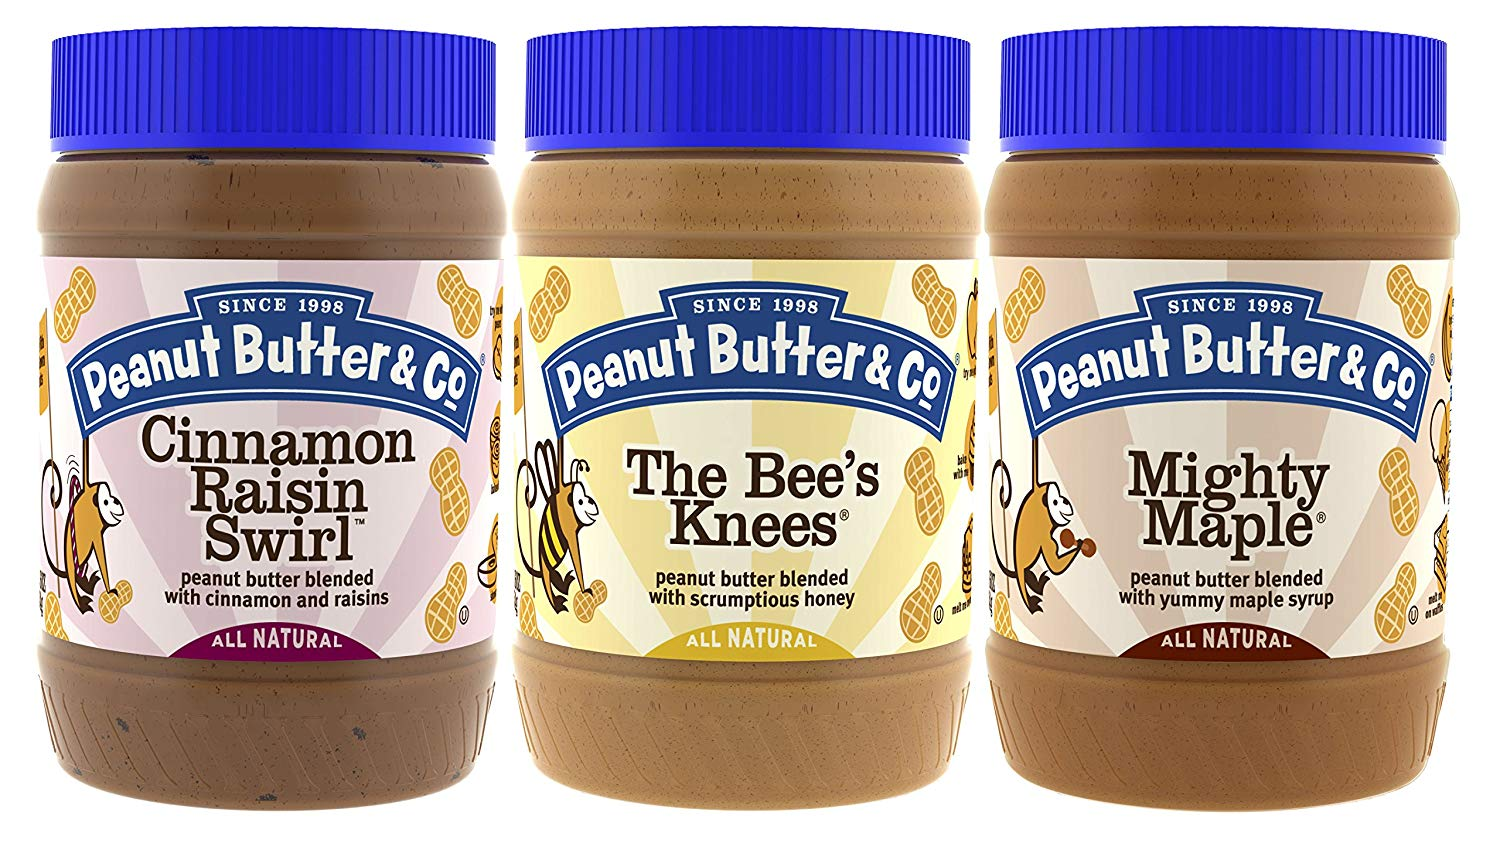 Peanut Butter variety pack